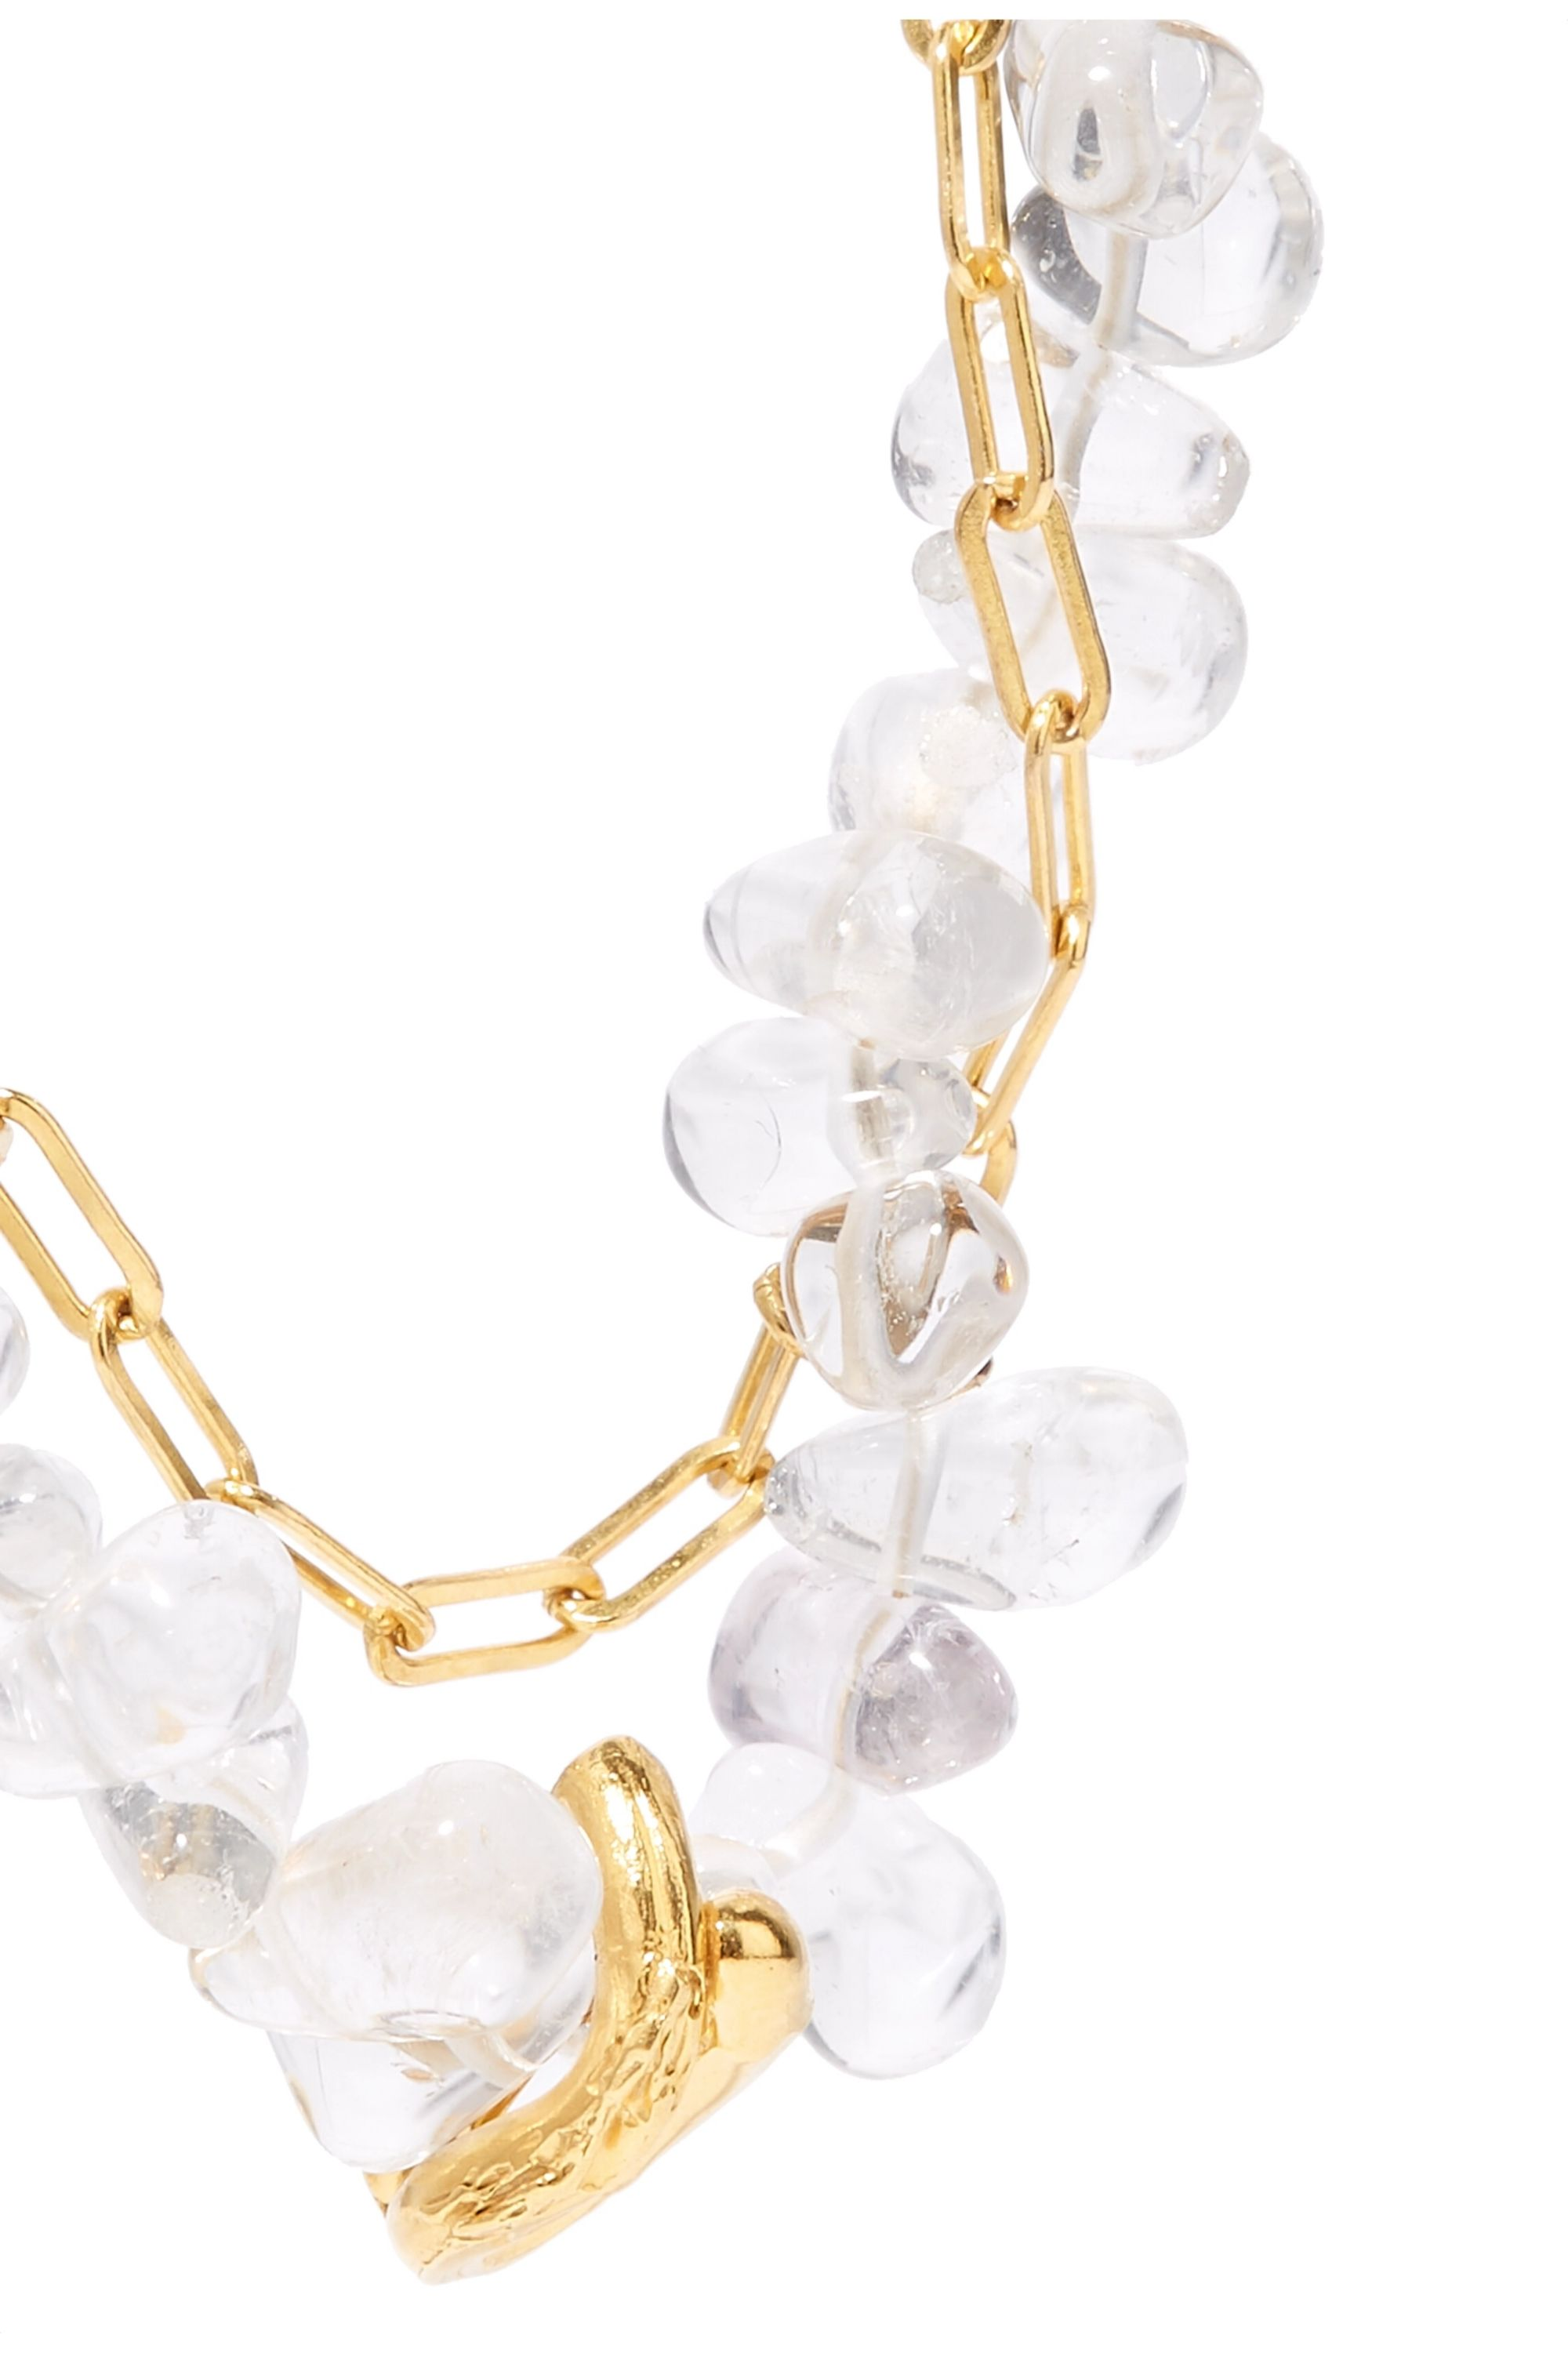 Alighieri The Infinite Light gold-plated and bead necklace